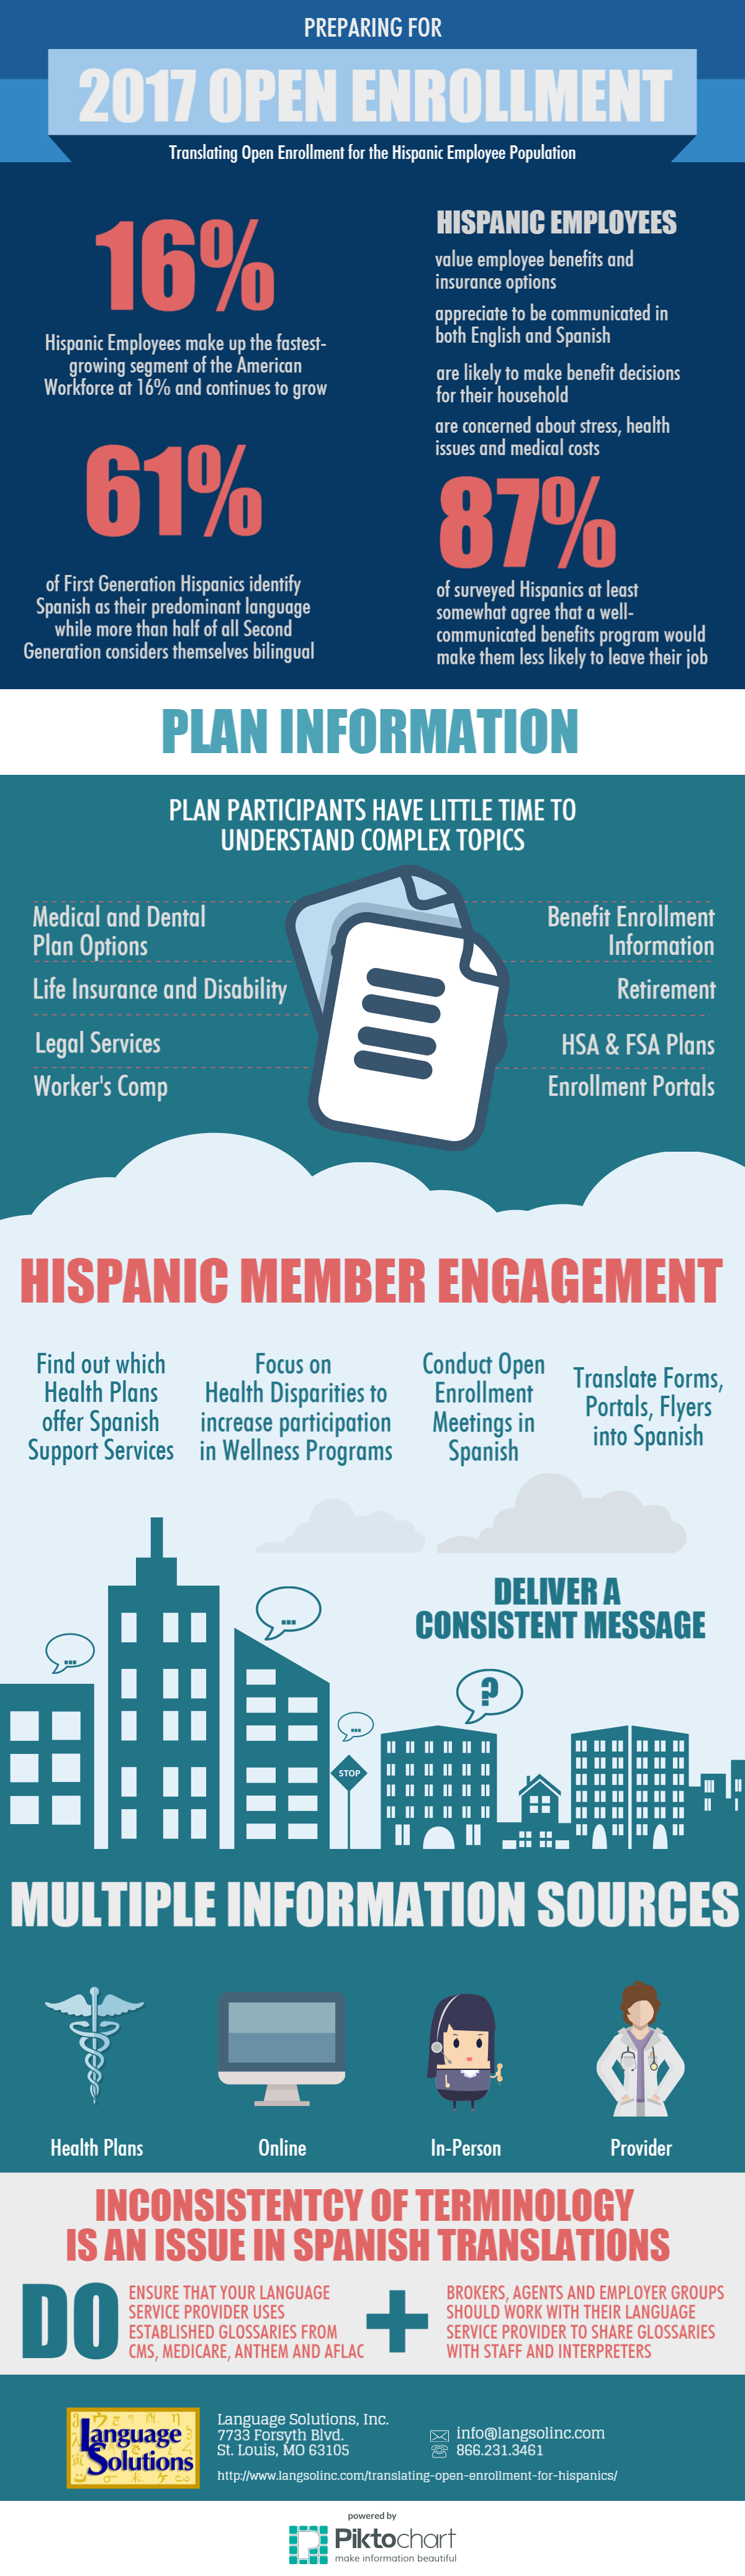 Open Enrollment for Hispanics infographic